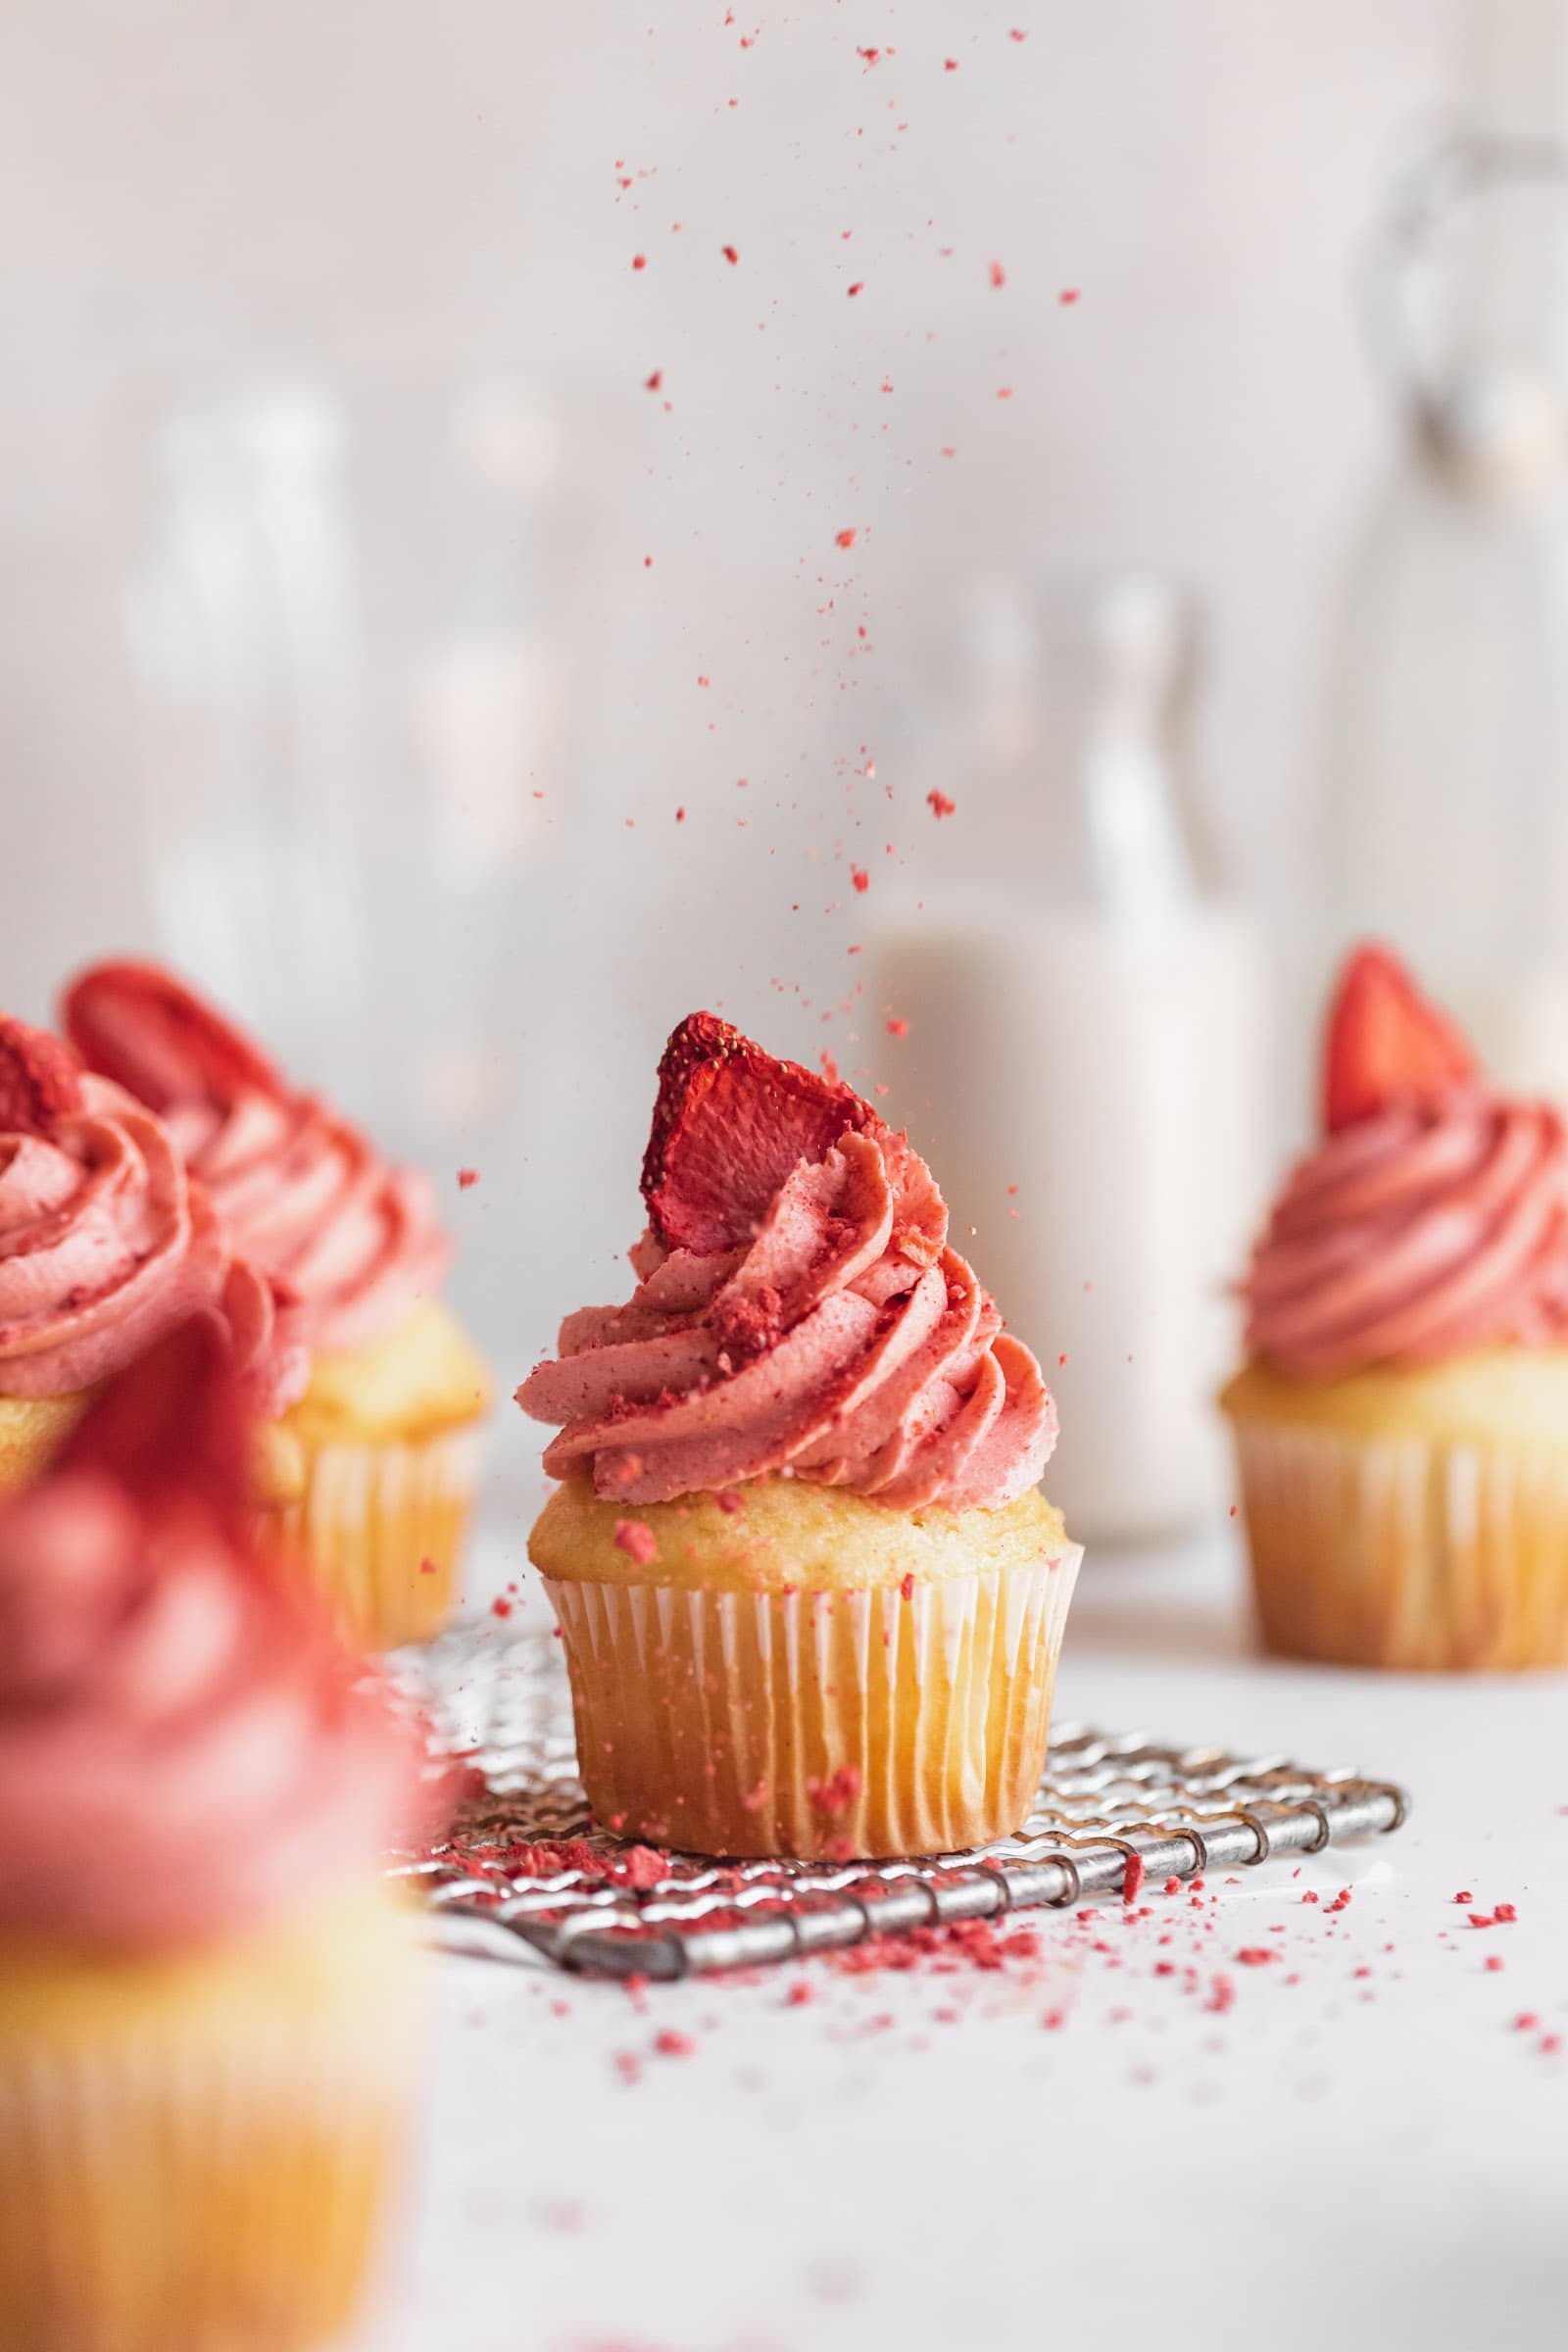 strawberry frosting on a cupcake